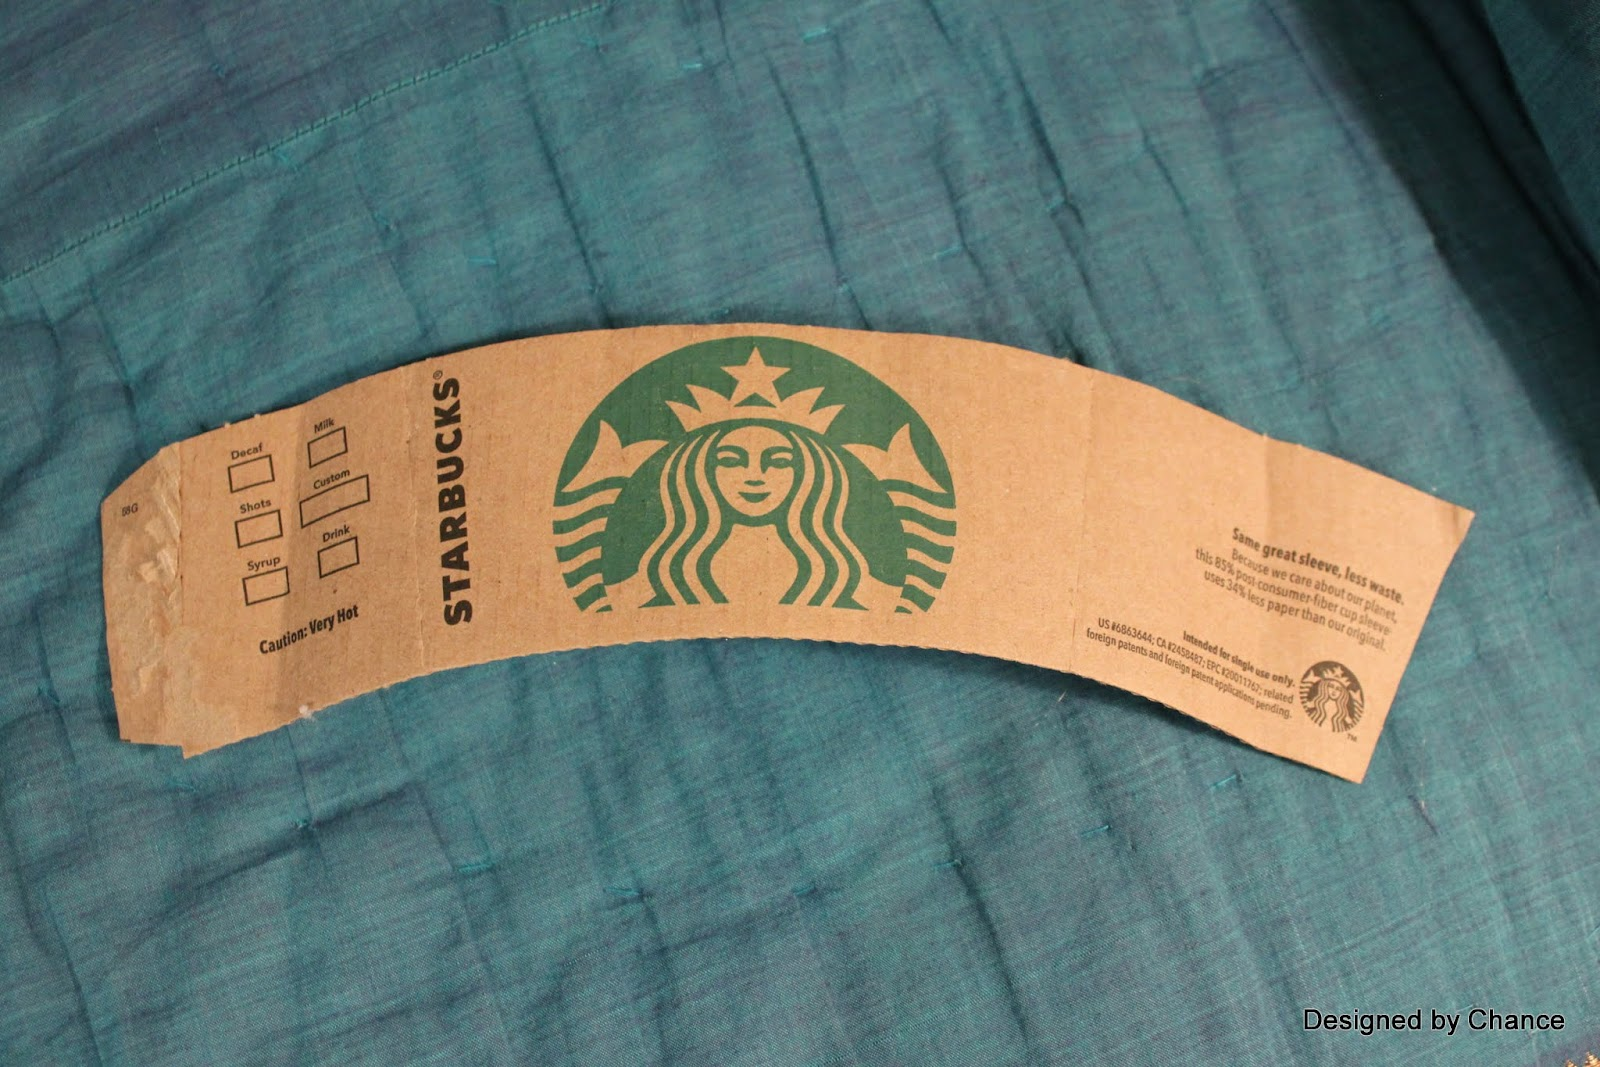 starbucks coffee cup sleeve template images galleries with a bite. Black Bedroom Furniture Sets. Home Design Ideas